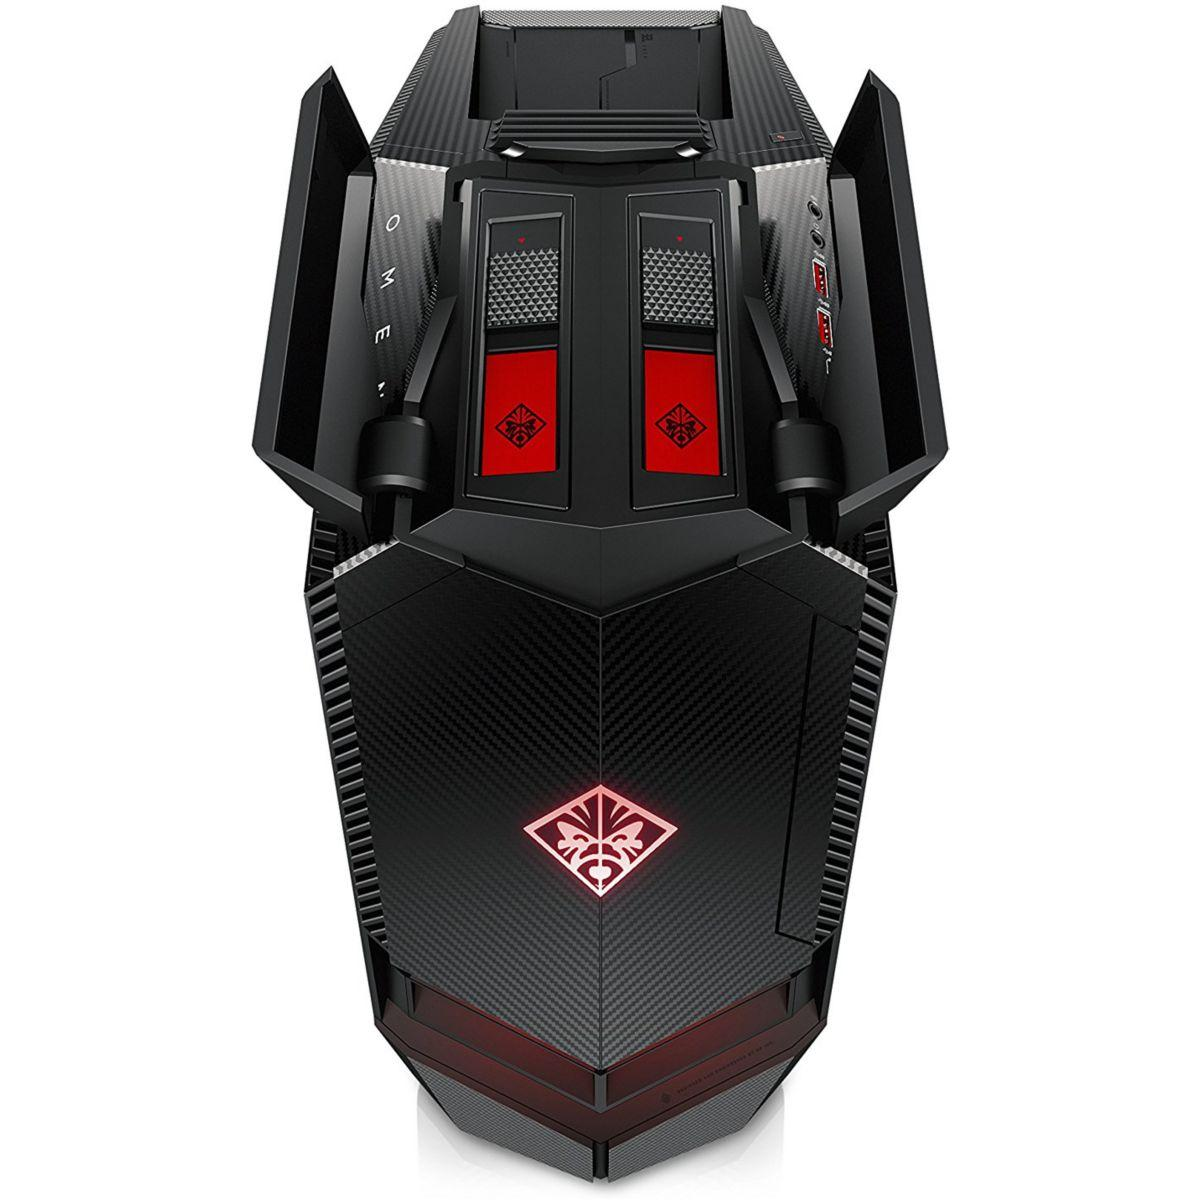 Pc gamer hp omen 880-146nf (photo)